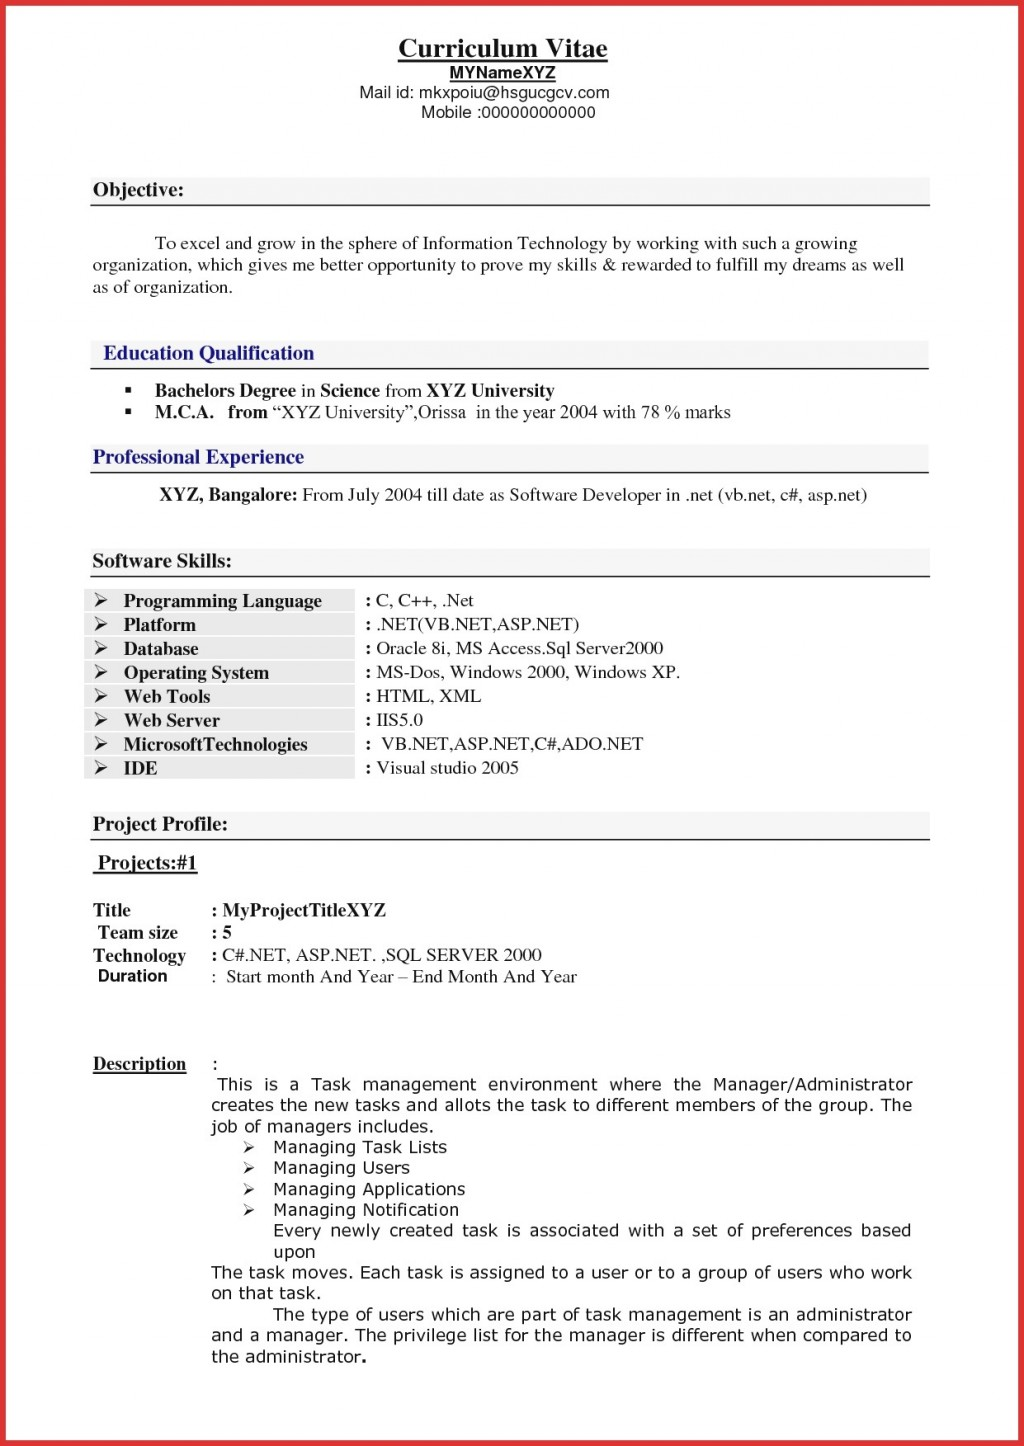 007 Research Paper Free On Poverty In America Well Written Resume Lovely Writing Software Example And Formidable Large